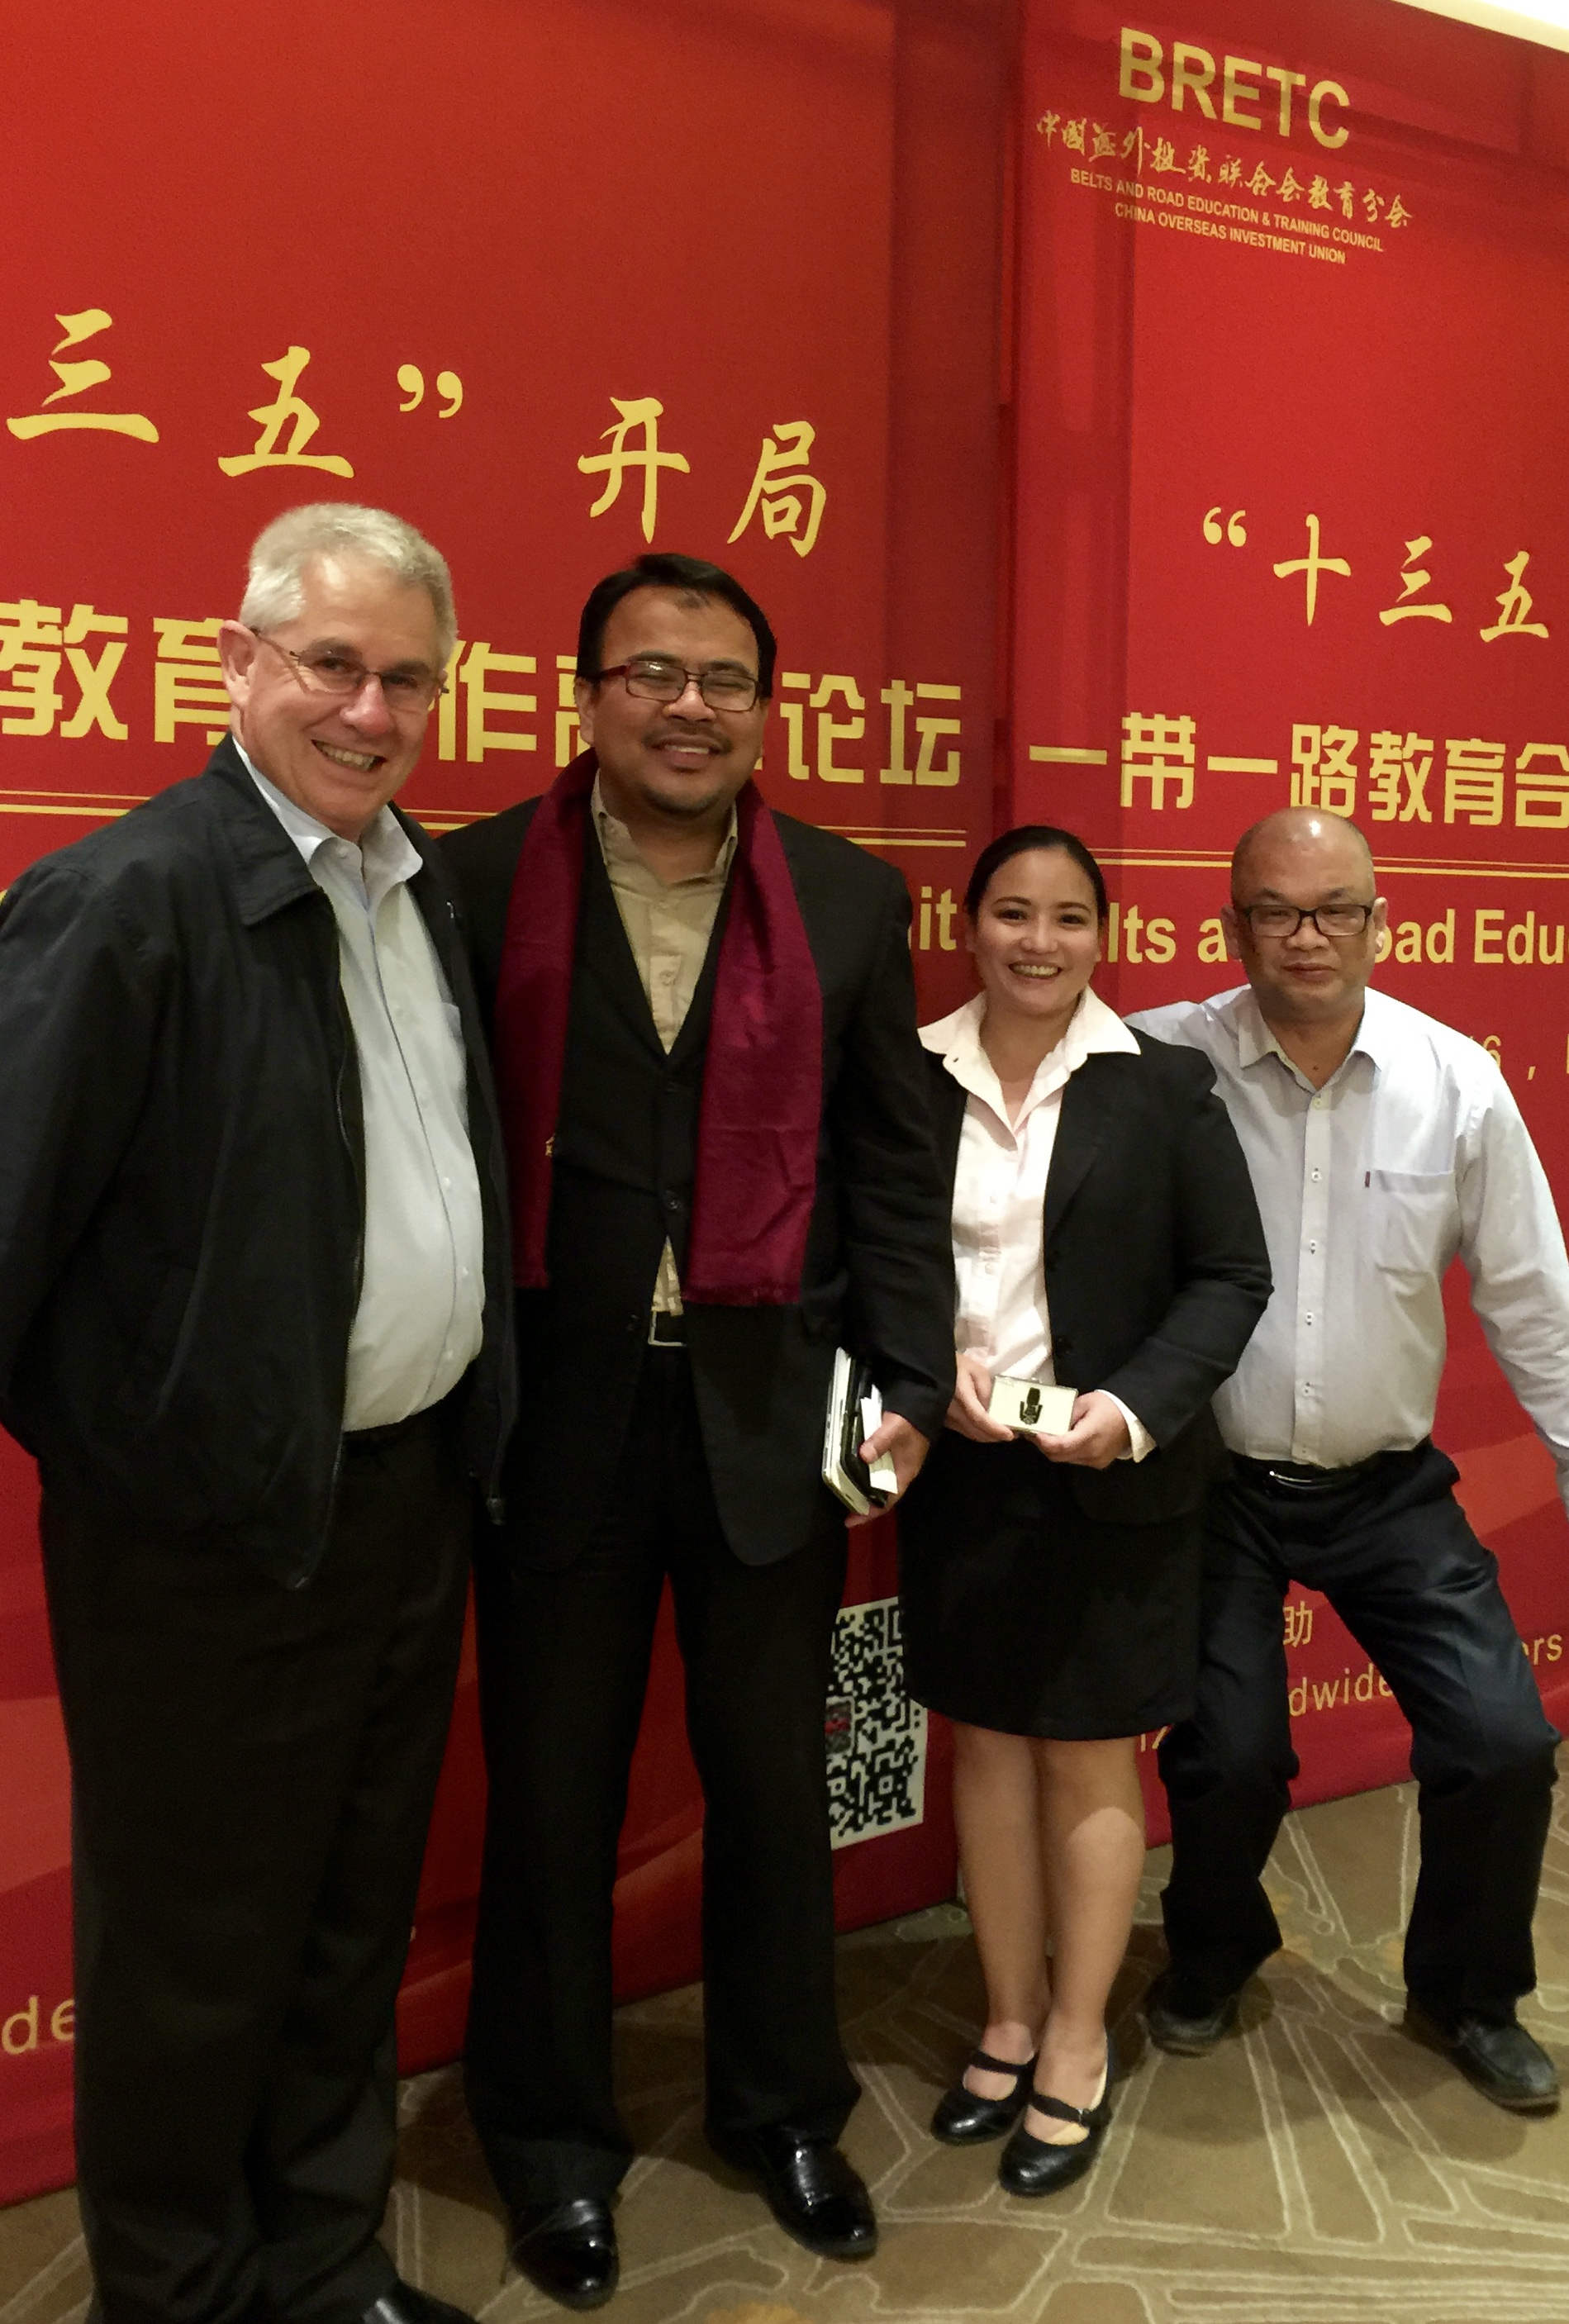 Belts & Road Education Summit China